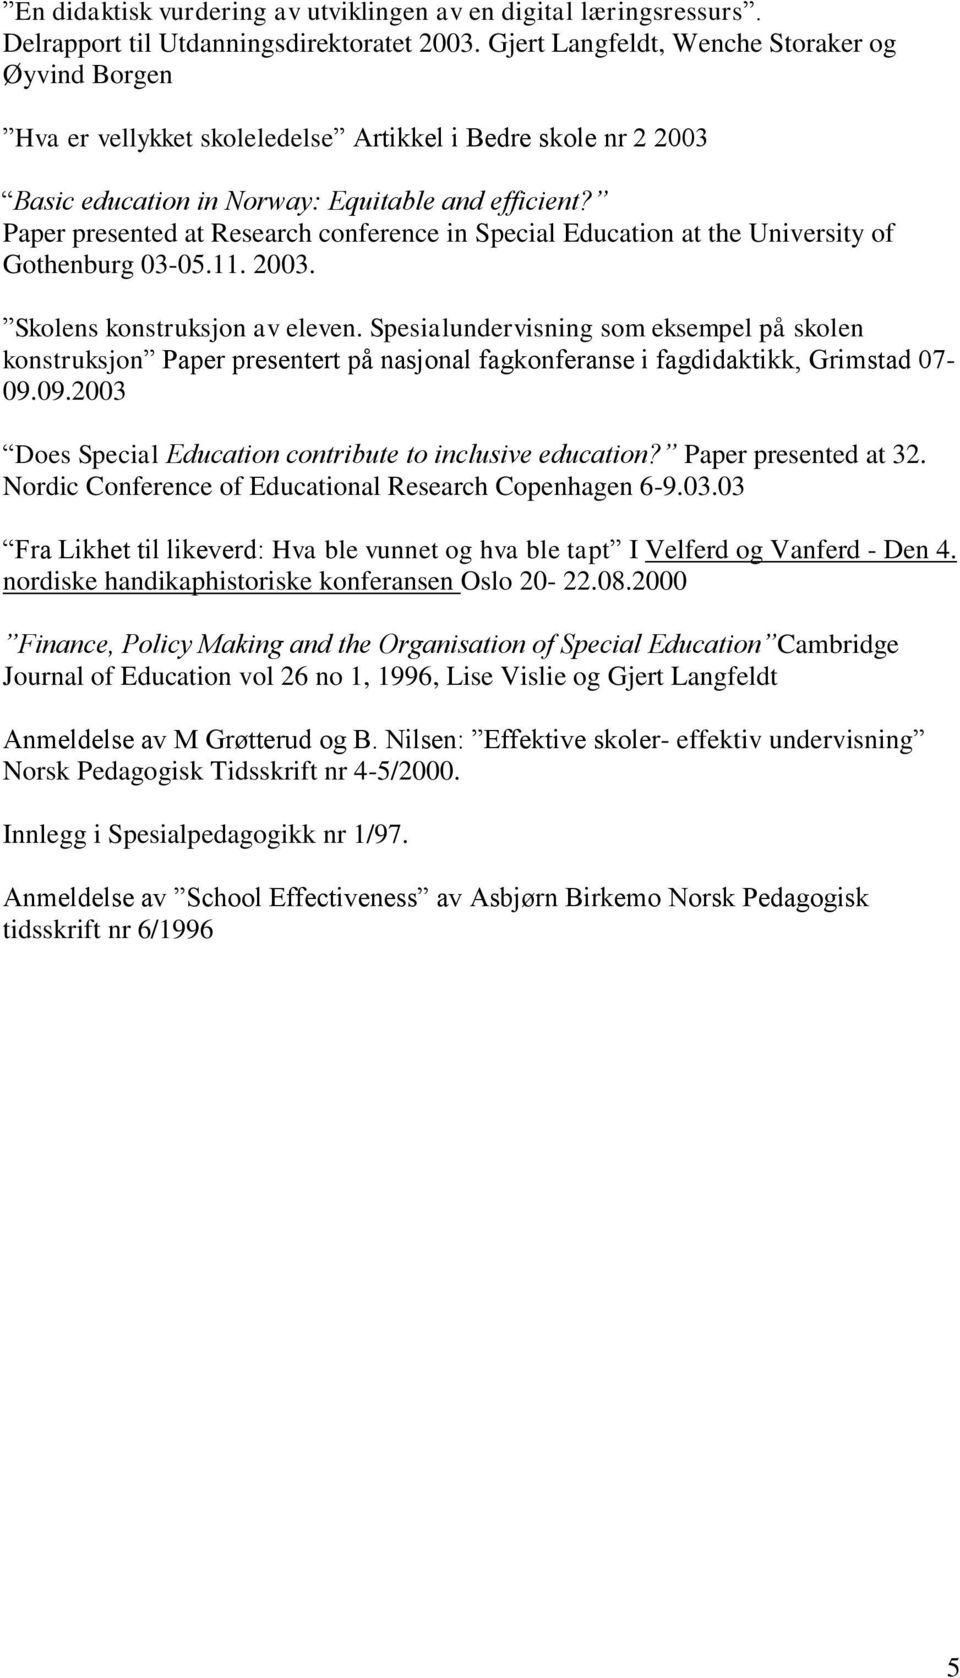 Paper presented at Research conference in Special Education at the University of Gothenburg 03-05.11. 2003. Skolens konstruksjon av eleven.